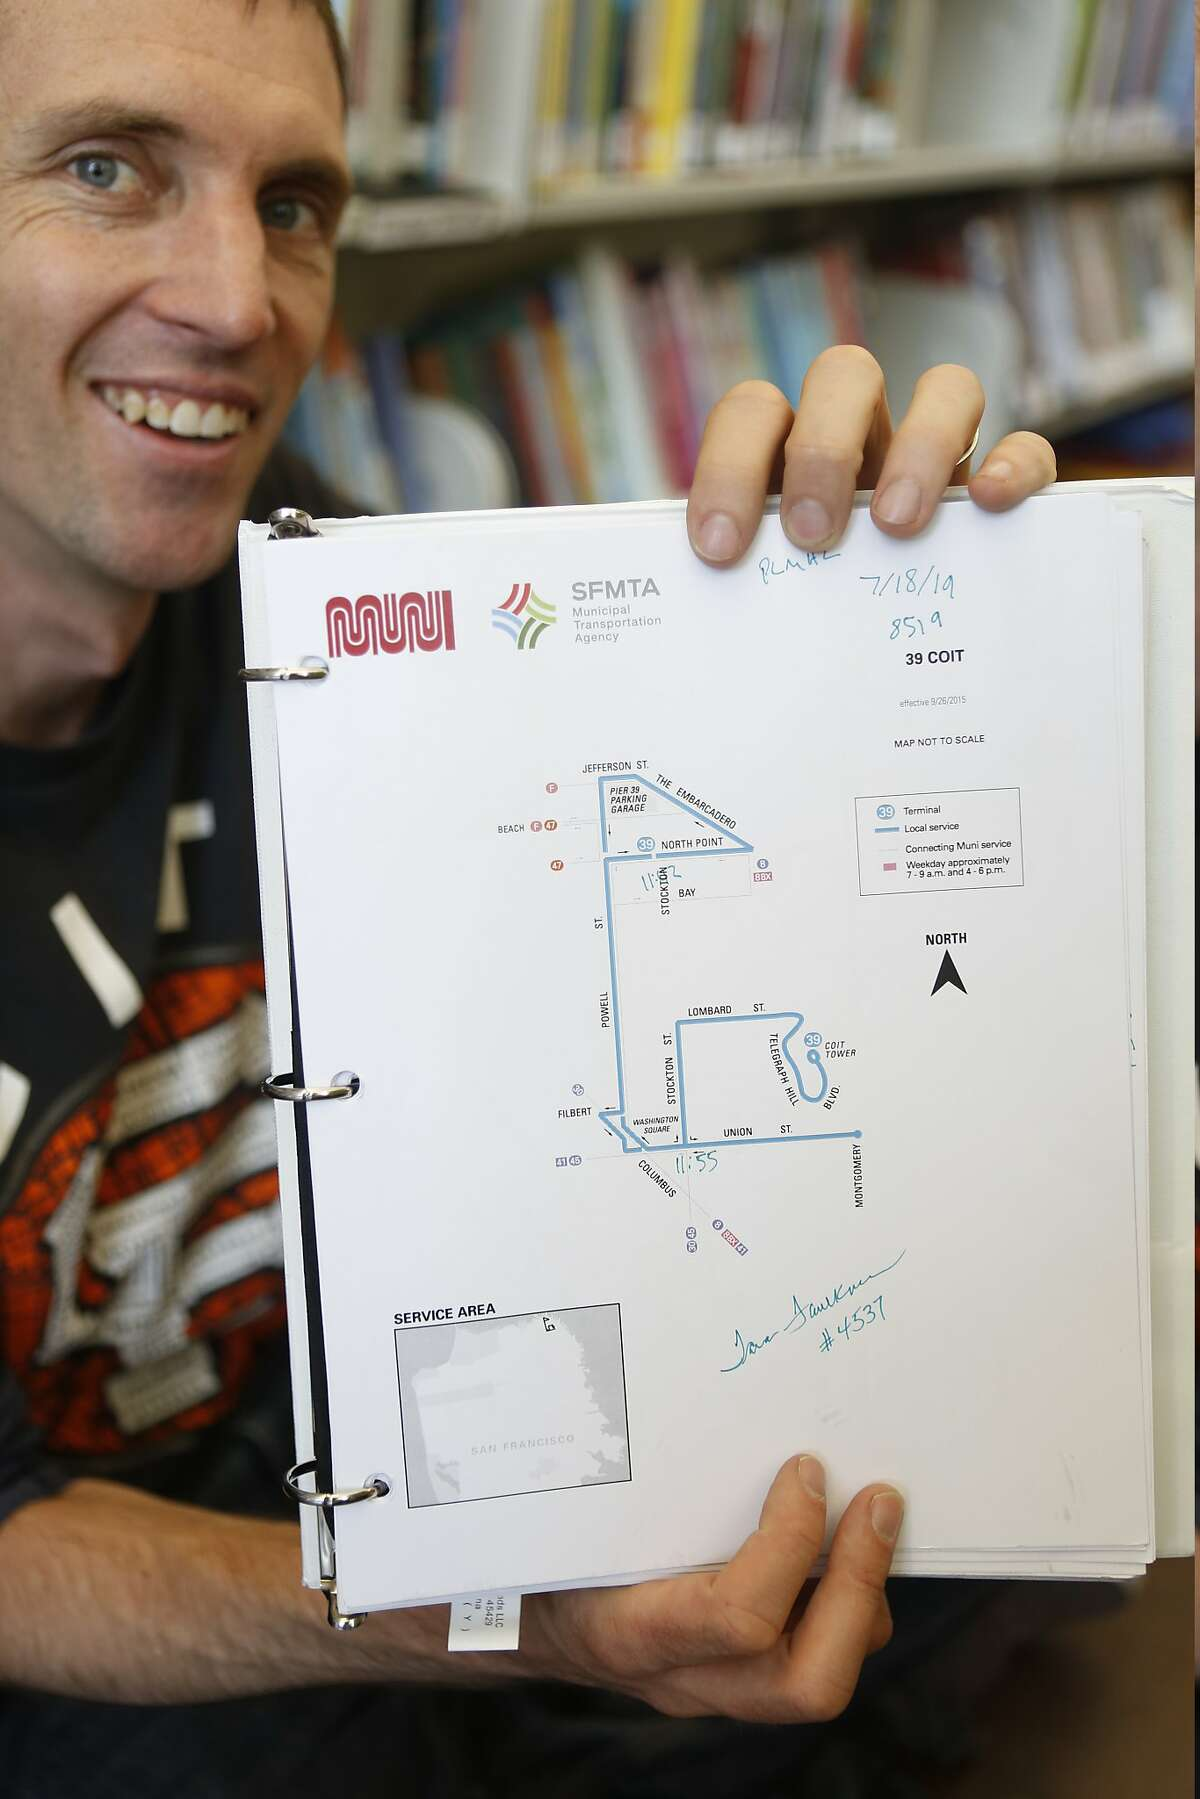 Mc Allen holds up a map of the Muni route he and his children took on Wednesday, July 18, 2018 in San Francisco, Calif. They are riding every Muni line end to end over the course of the summer, and Mc always tries to get the bus driver's signature.